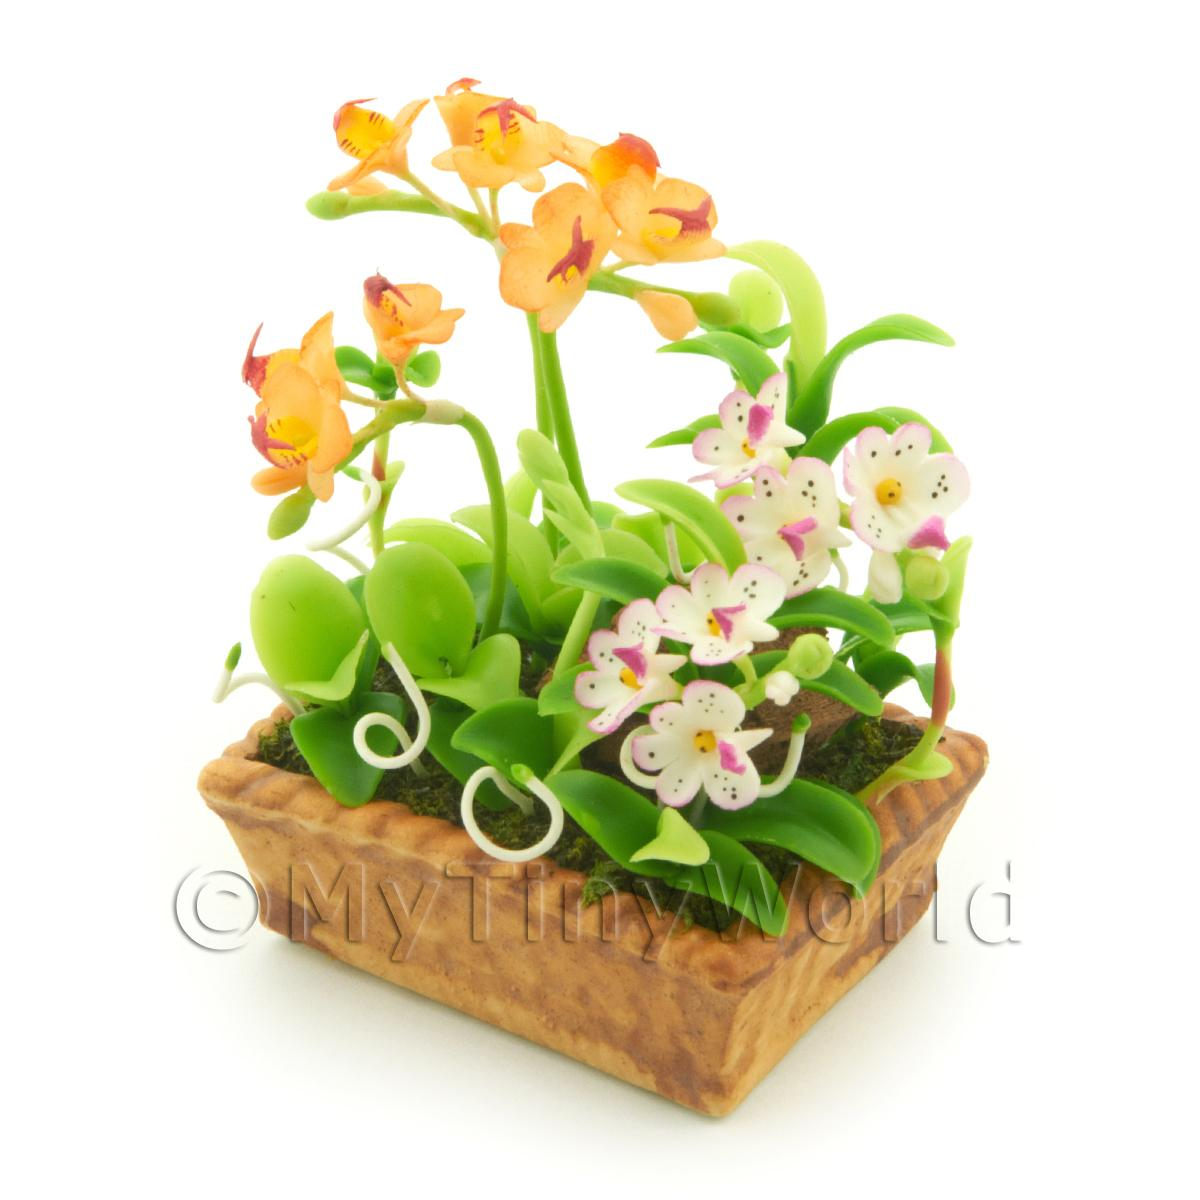 Dolls House Peach Cattleya and White Cattleya Orchids